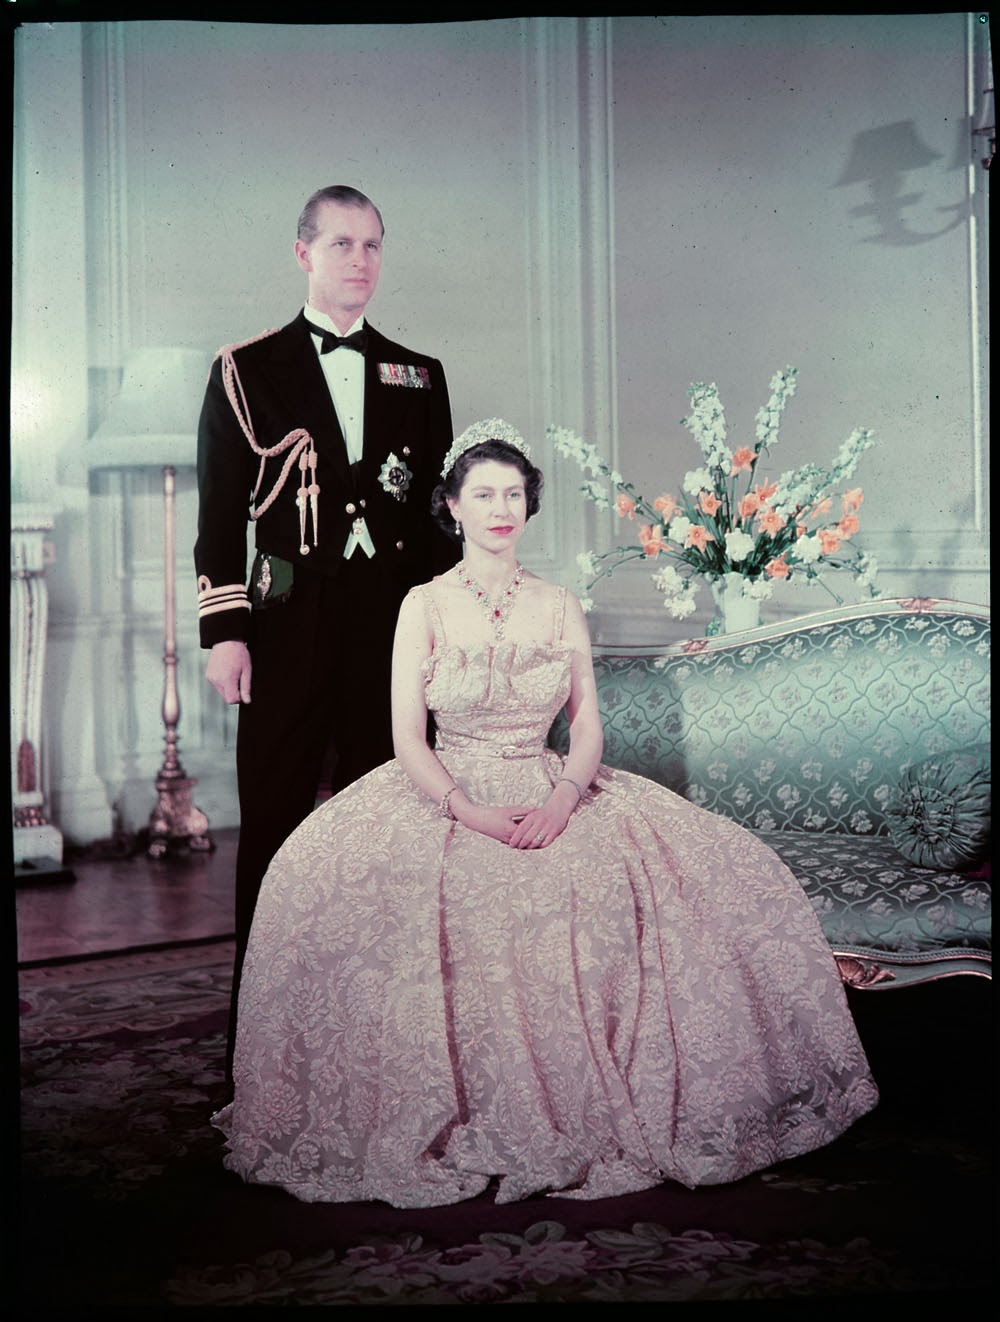 The Duke Of Edinburgh Wanted To Have A Name Representing His Side Family But Young Queen Sided With Her Elishment